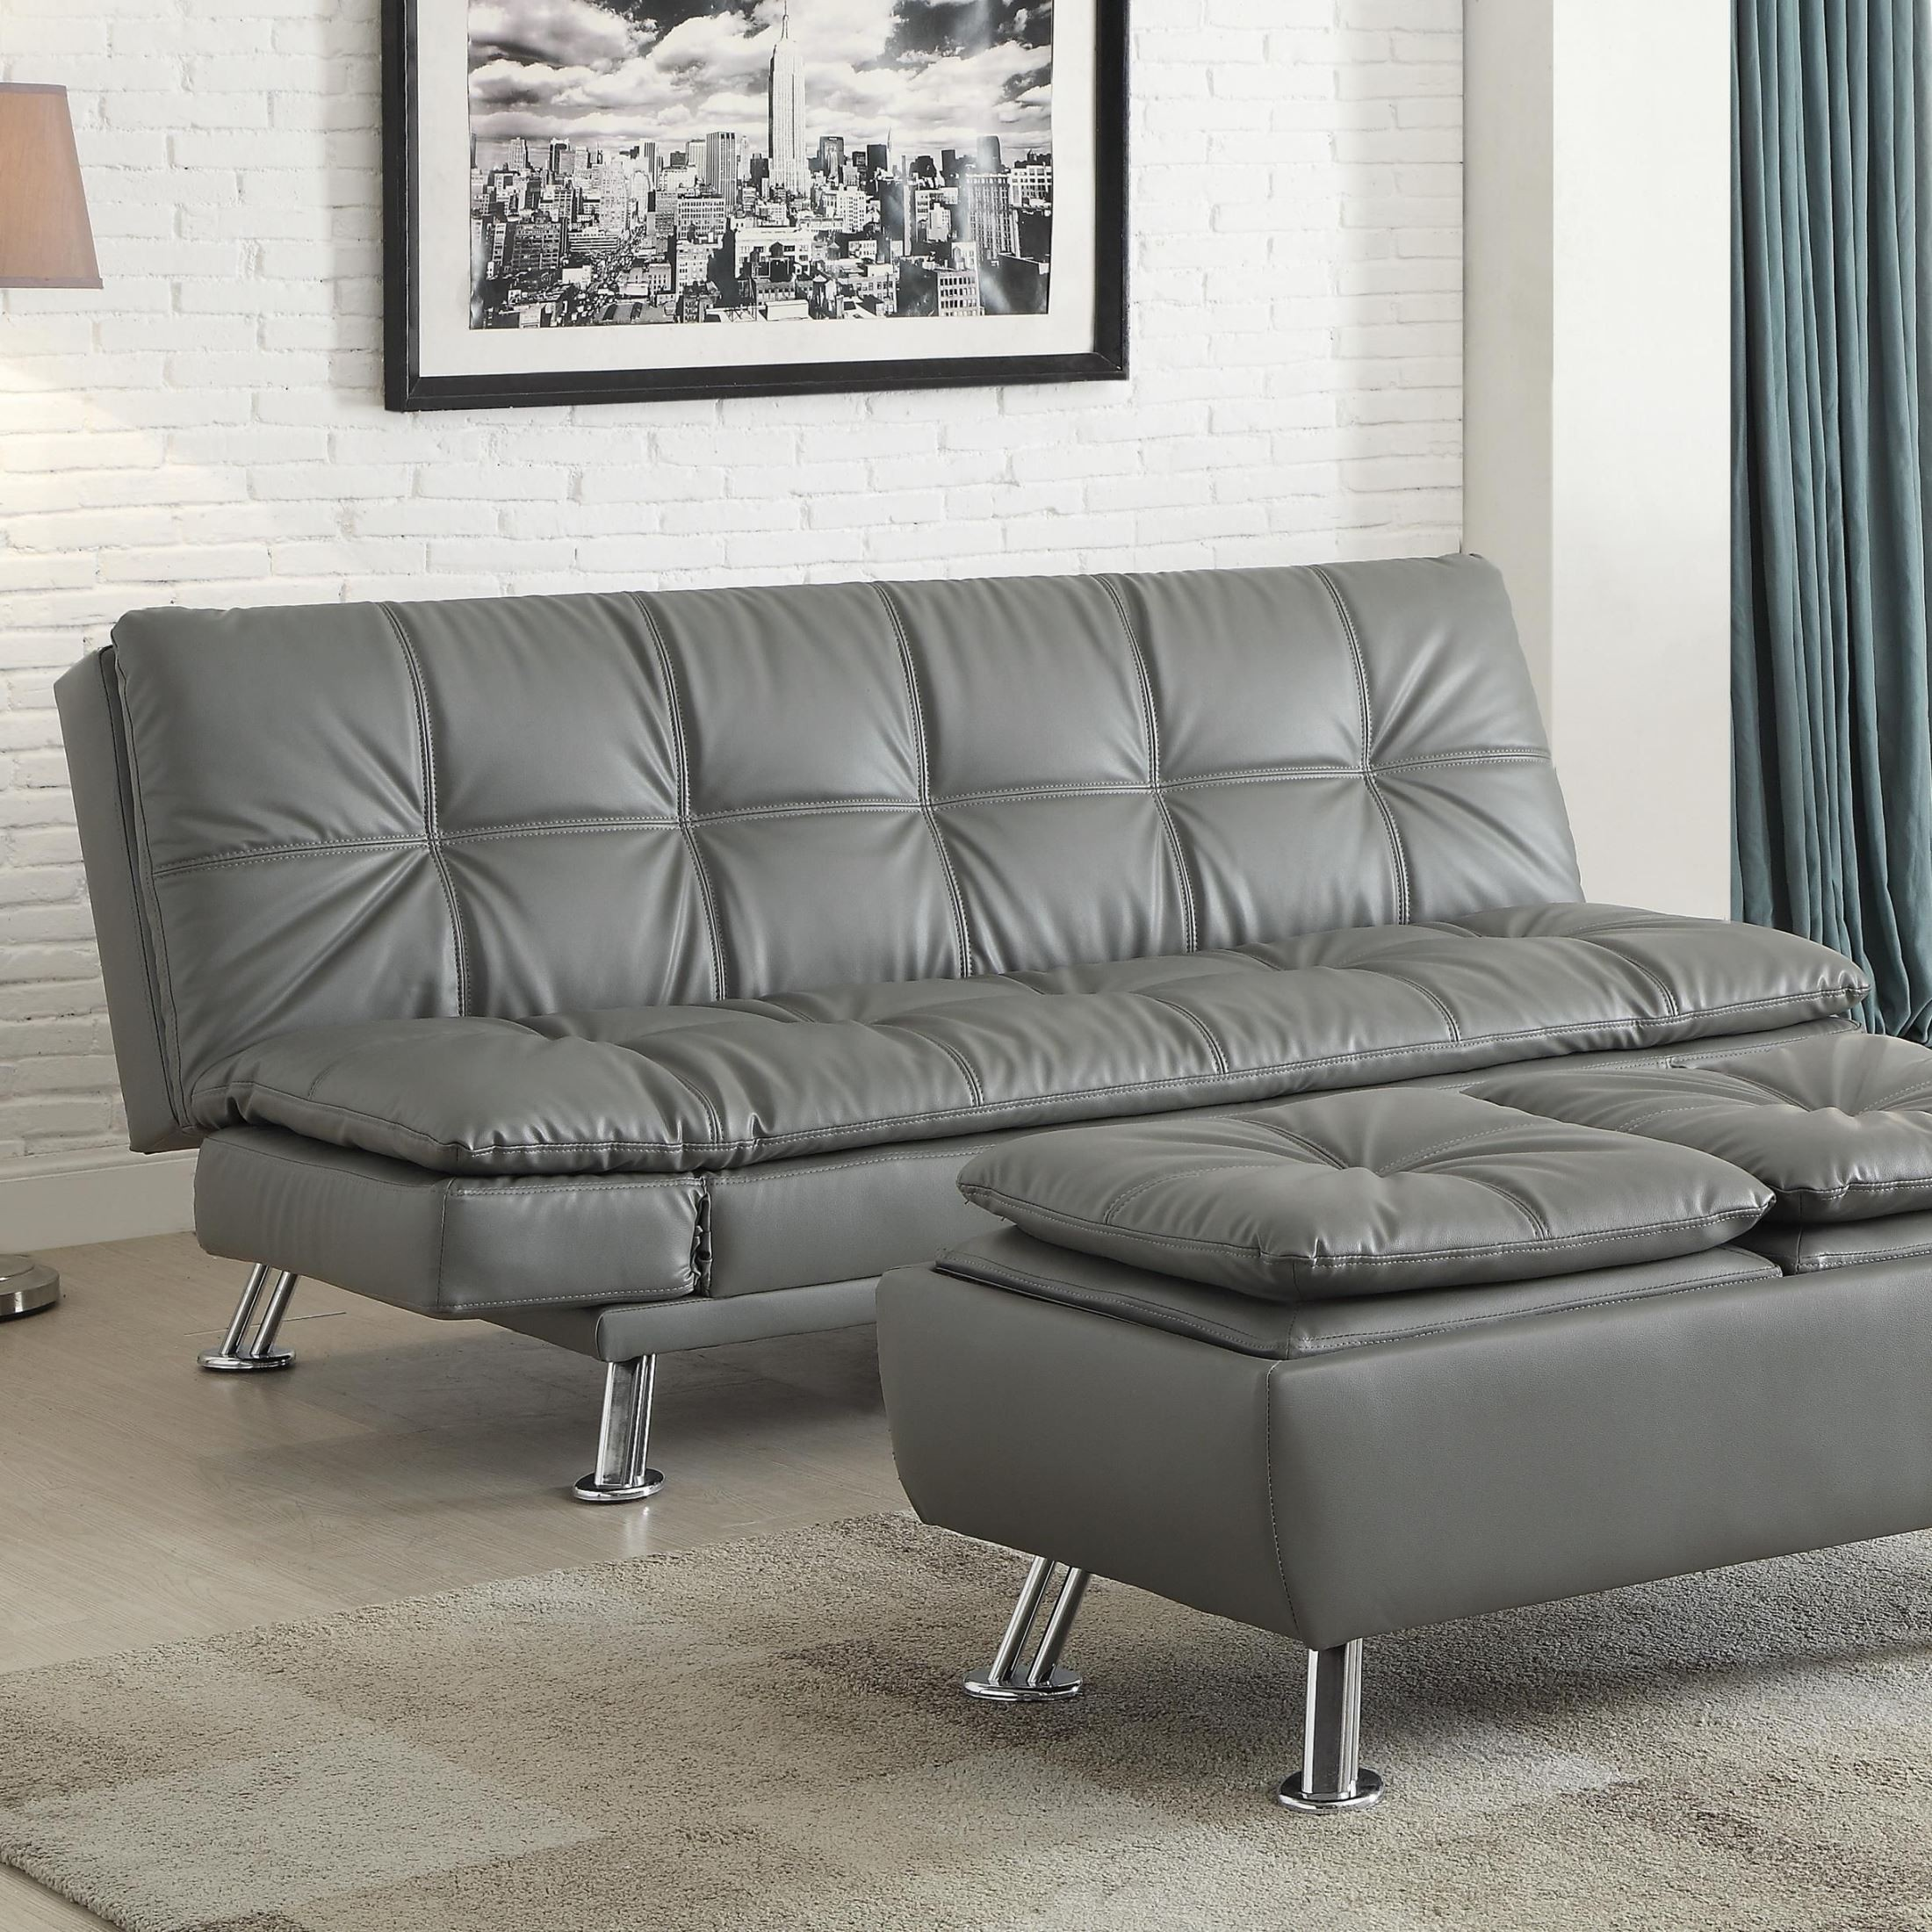 Dilleston Futon Style Living Room Set From Coaster (500096) | Coleman  Furniture